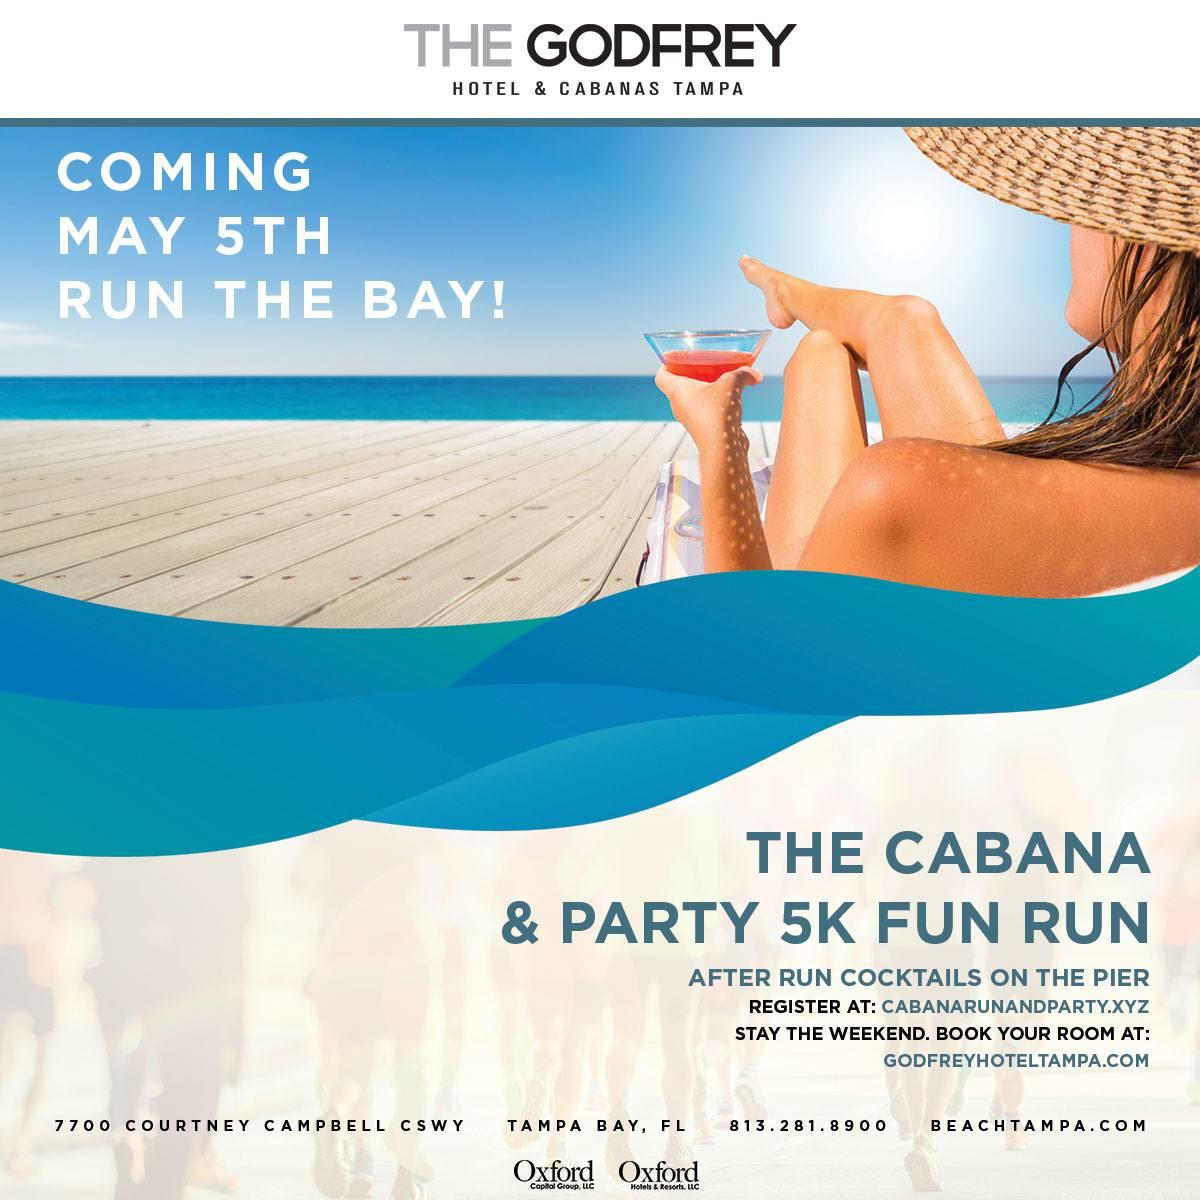 The Godfrey Hotel & Cabanas Tampa Party 5k Fun Run